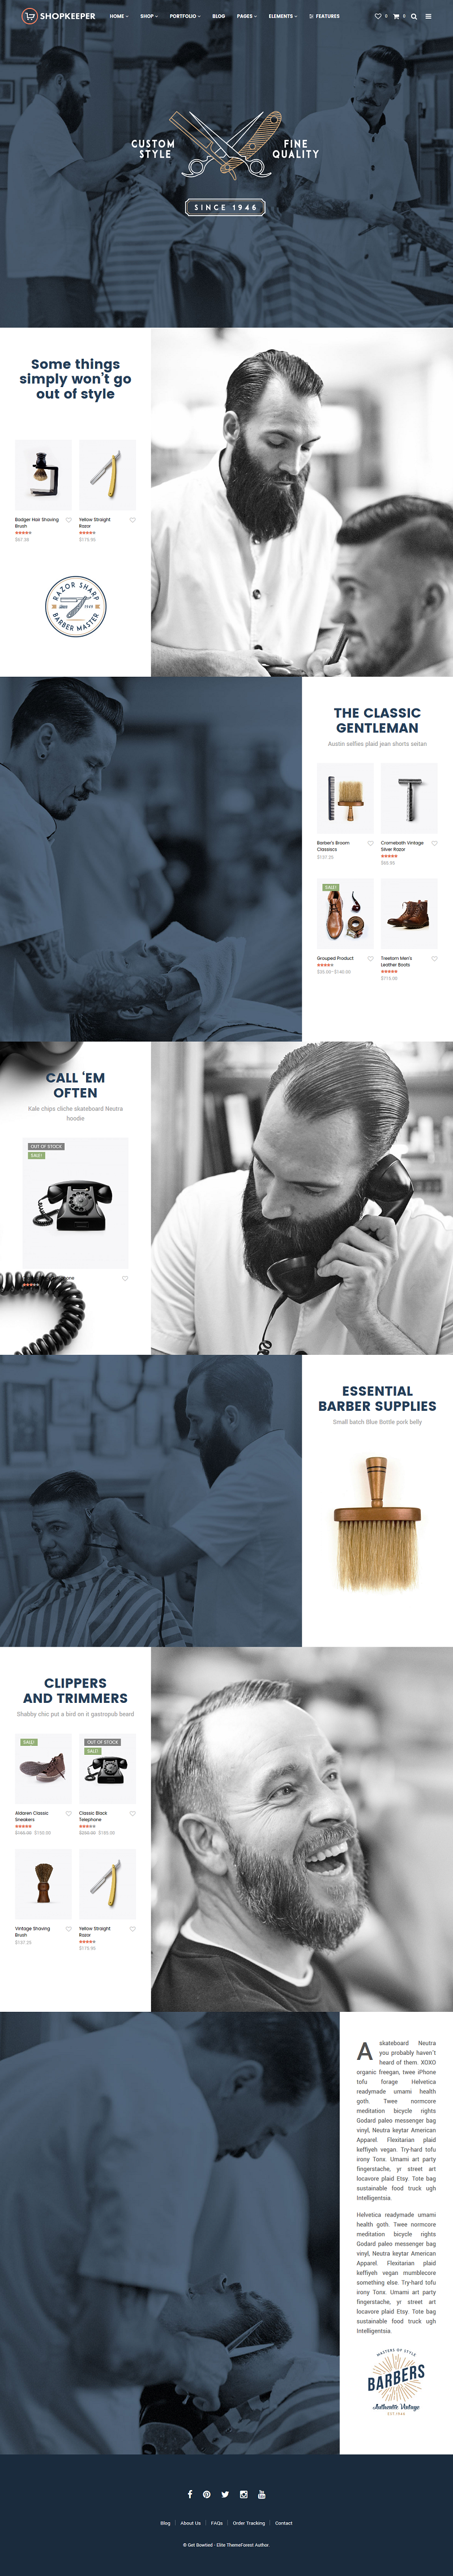 shopkepper for web design inspiration